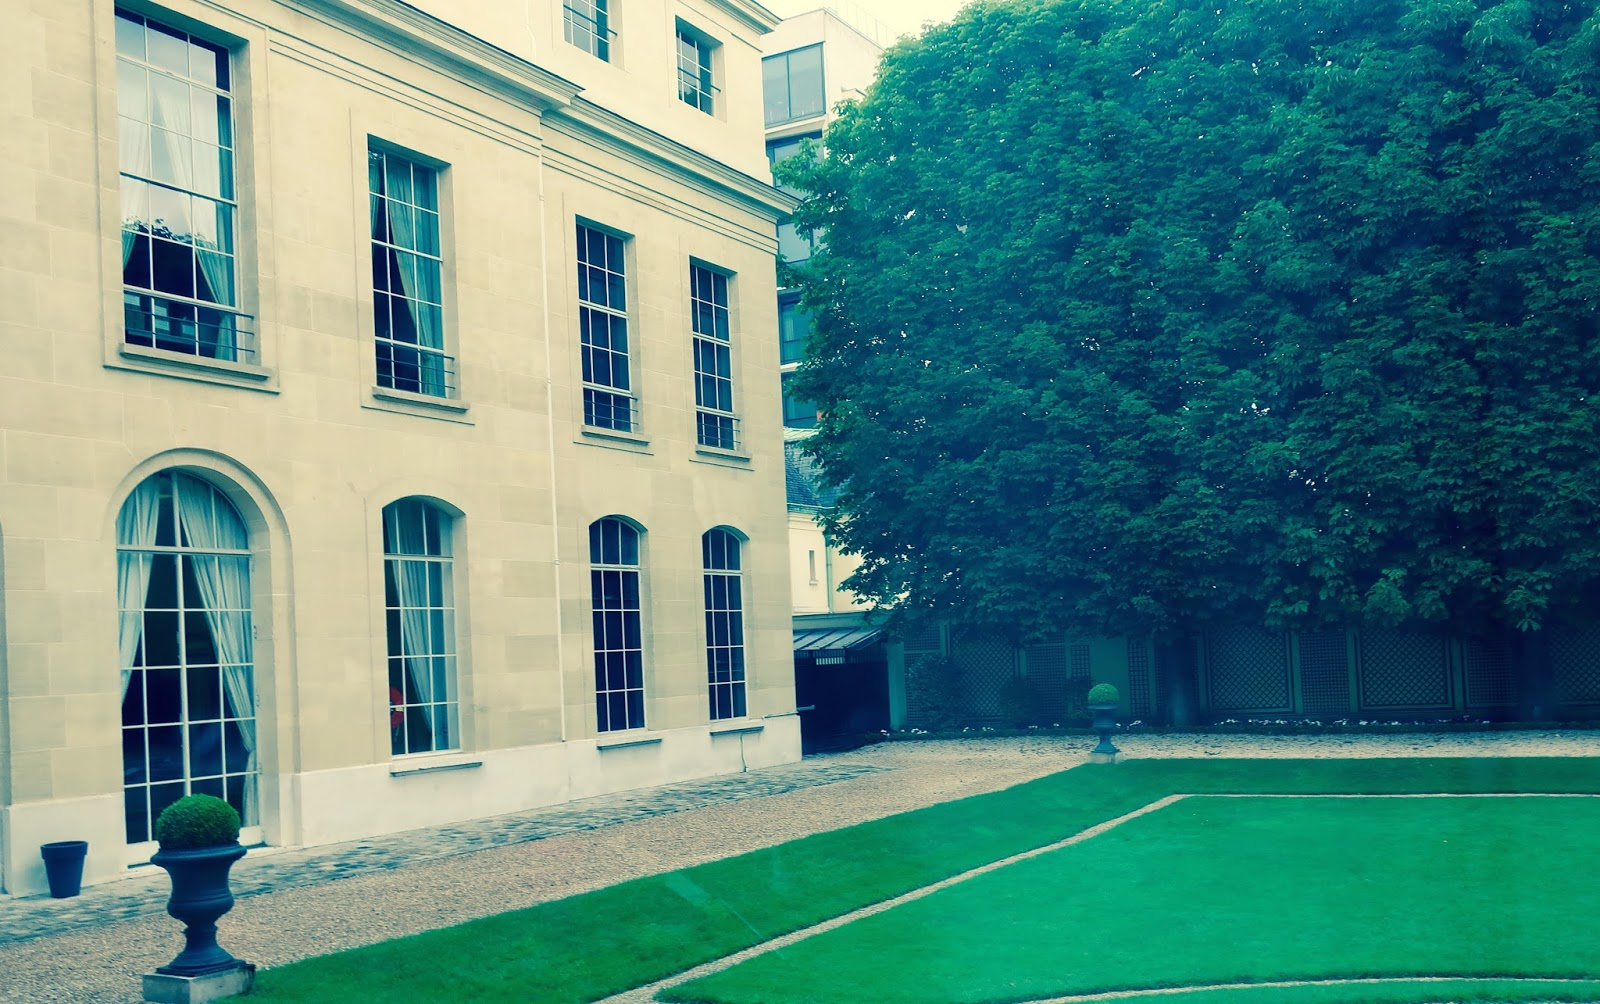 International luxury consulting maison de la chimie for 28 rue saint dominique maison de la chimie